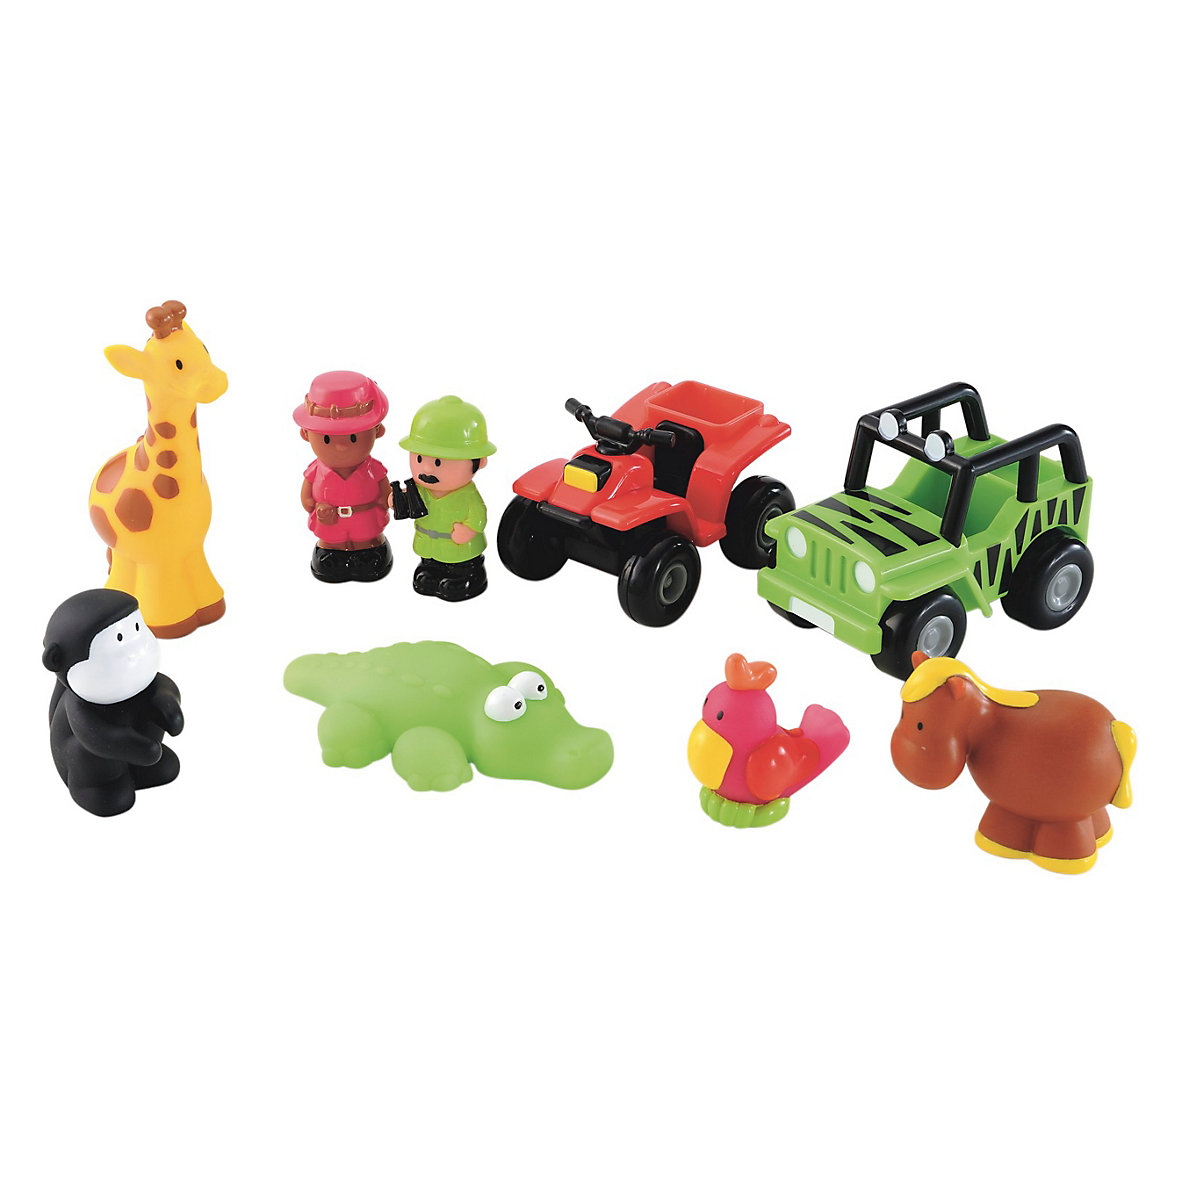 Toys For Girls 18 Months : New elc boys and girls happyland safari adventures toy